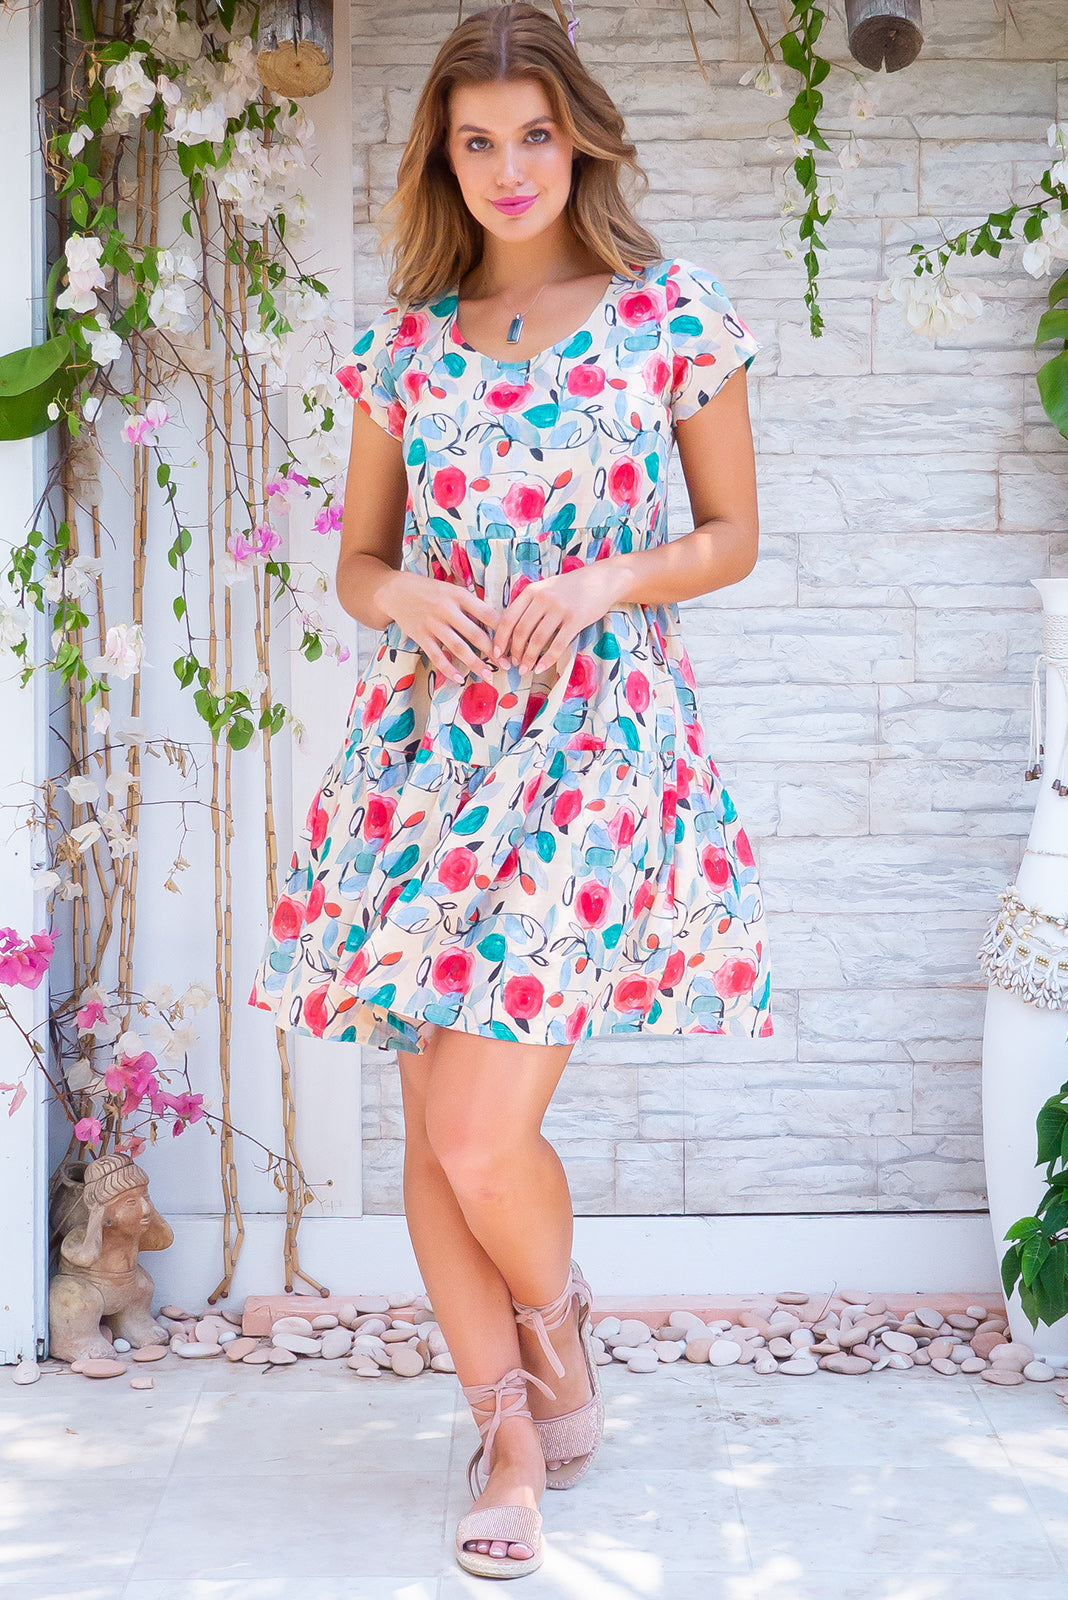 Lulu Elle Retro Roses Mini Dress, bohemian summer style, 100% cotton, slightly sheer, side pockets, tiered skirt, sandy beige base with medium magenta, blue and teal rose print.